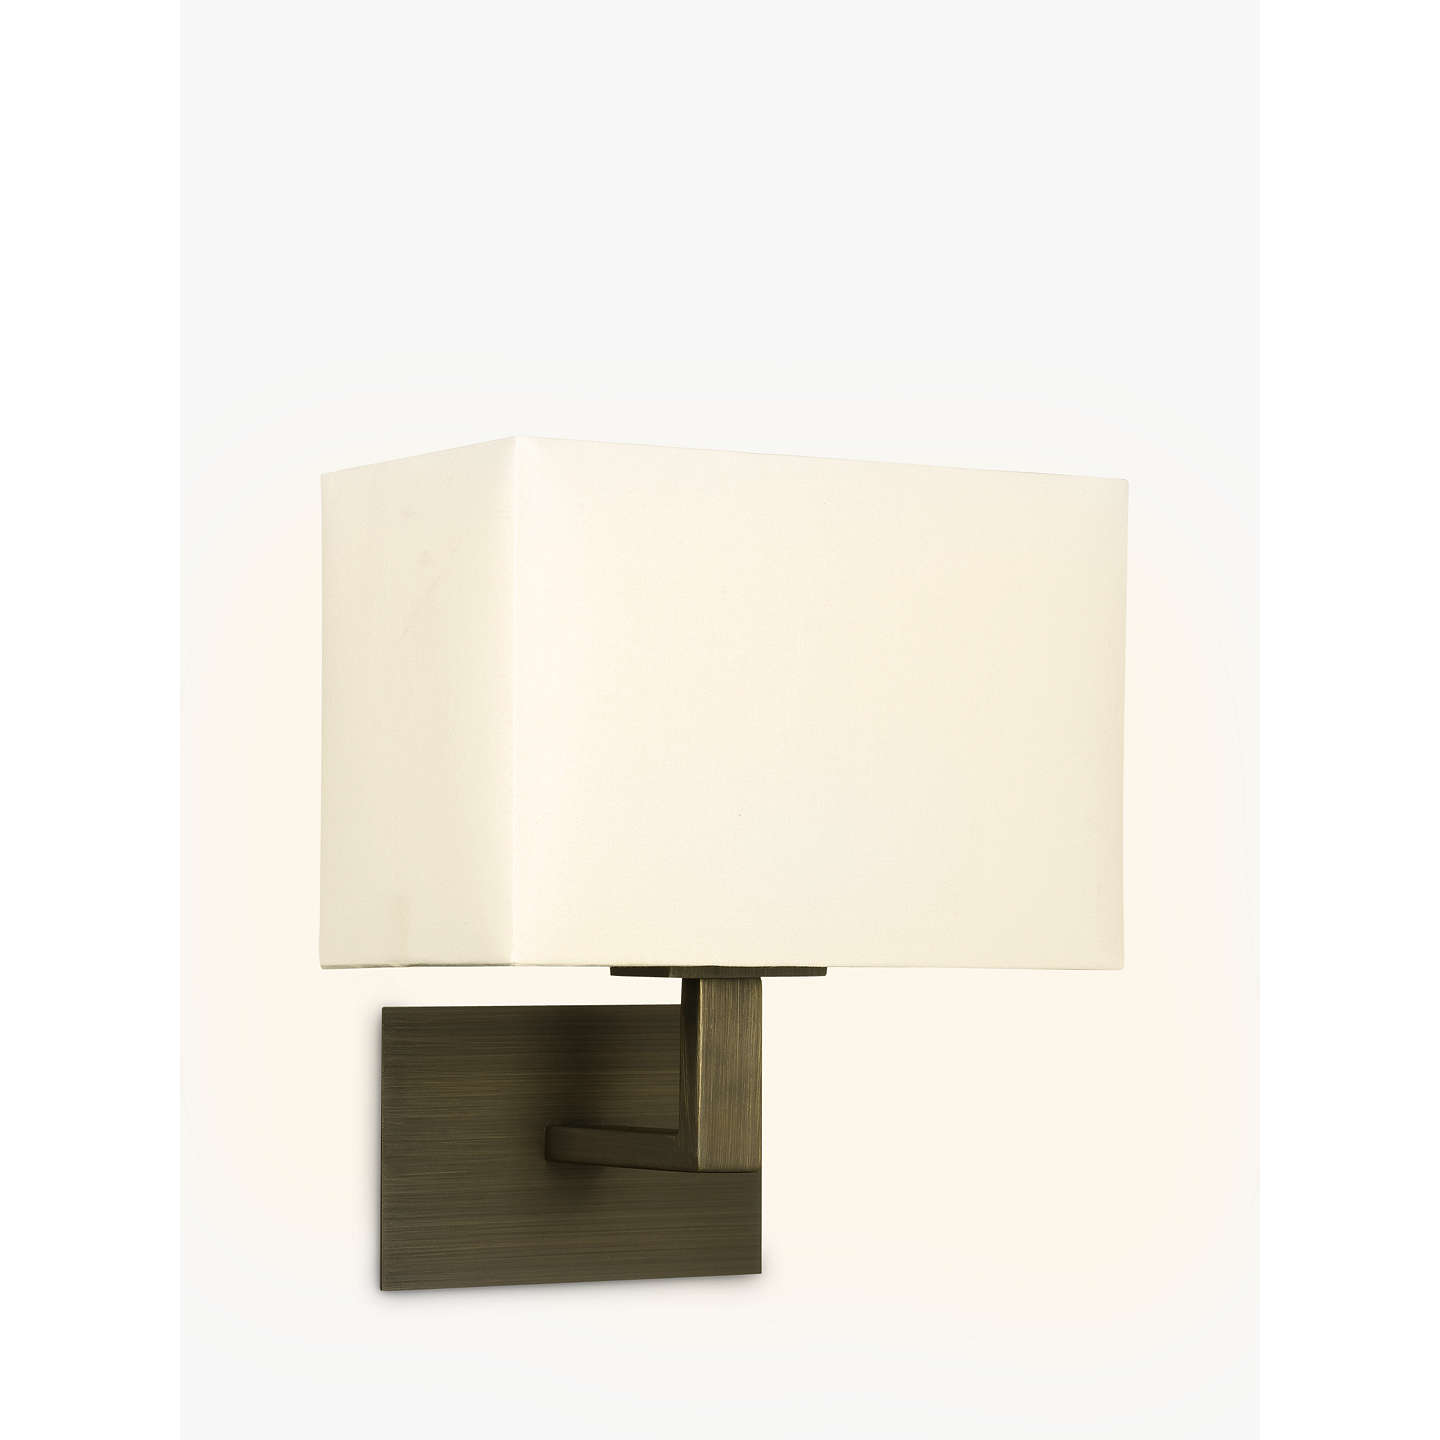 Astro connaught wall light bronze at john lewis buyastro connaught wall light bronze online at johnlewis mozeypictures Gallery